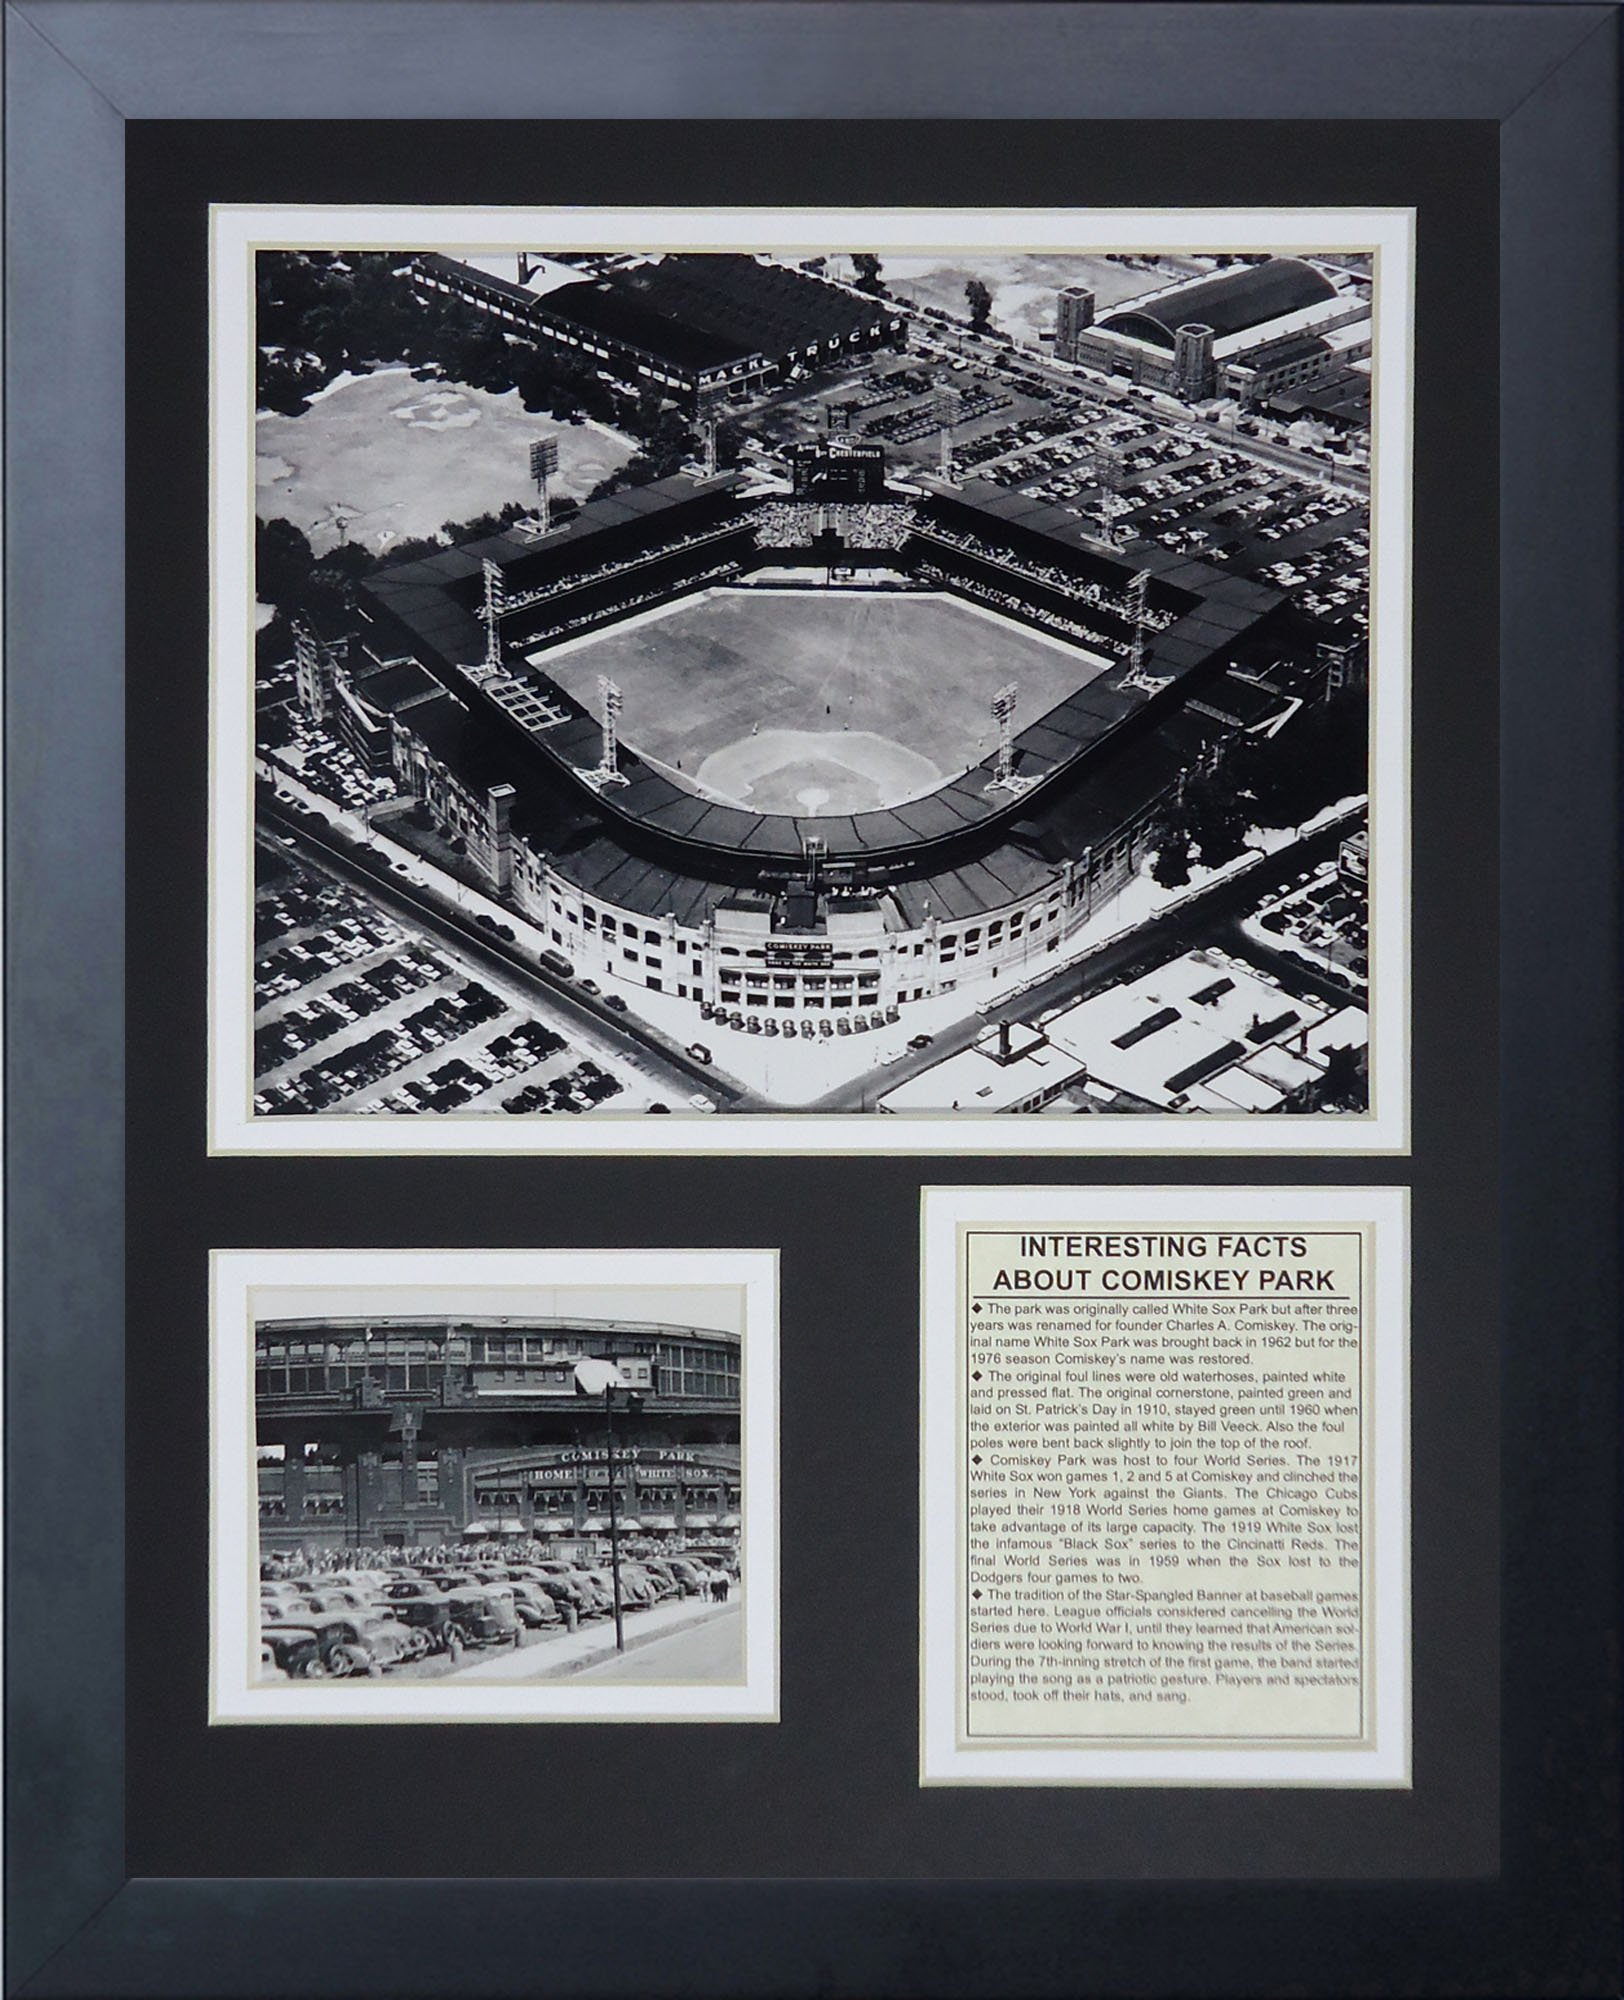 Legends Never Die ''Comiskey Park'' Black and White Framed Photo Collage, 11 x 14-Inch